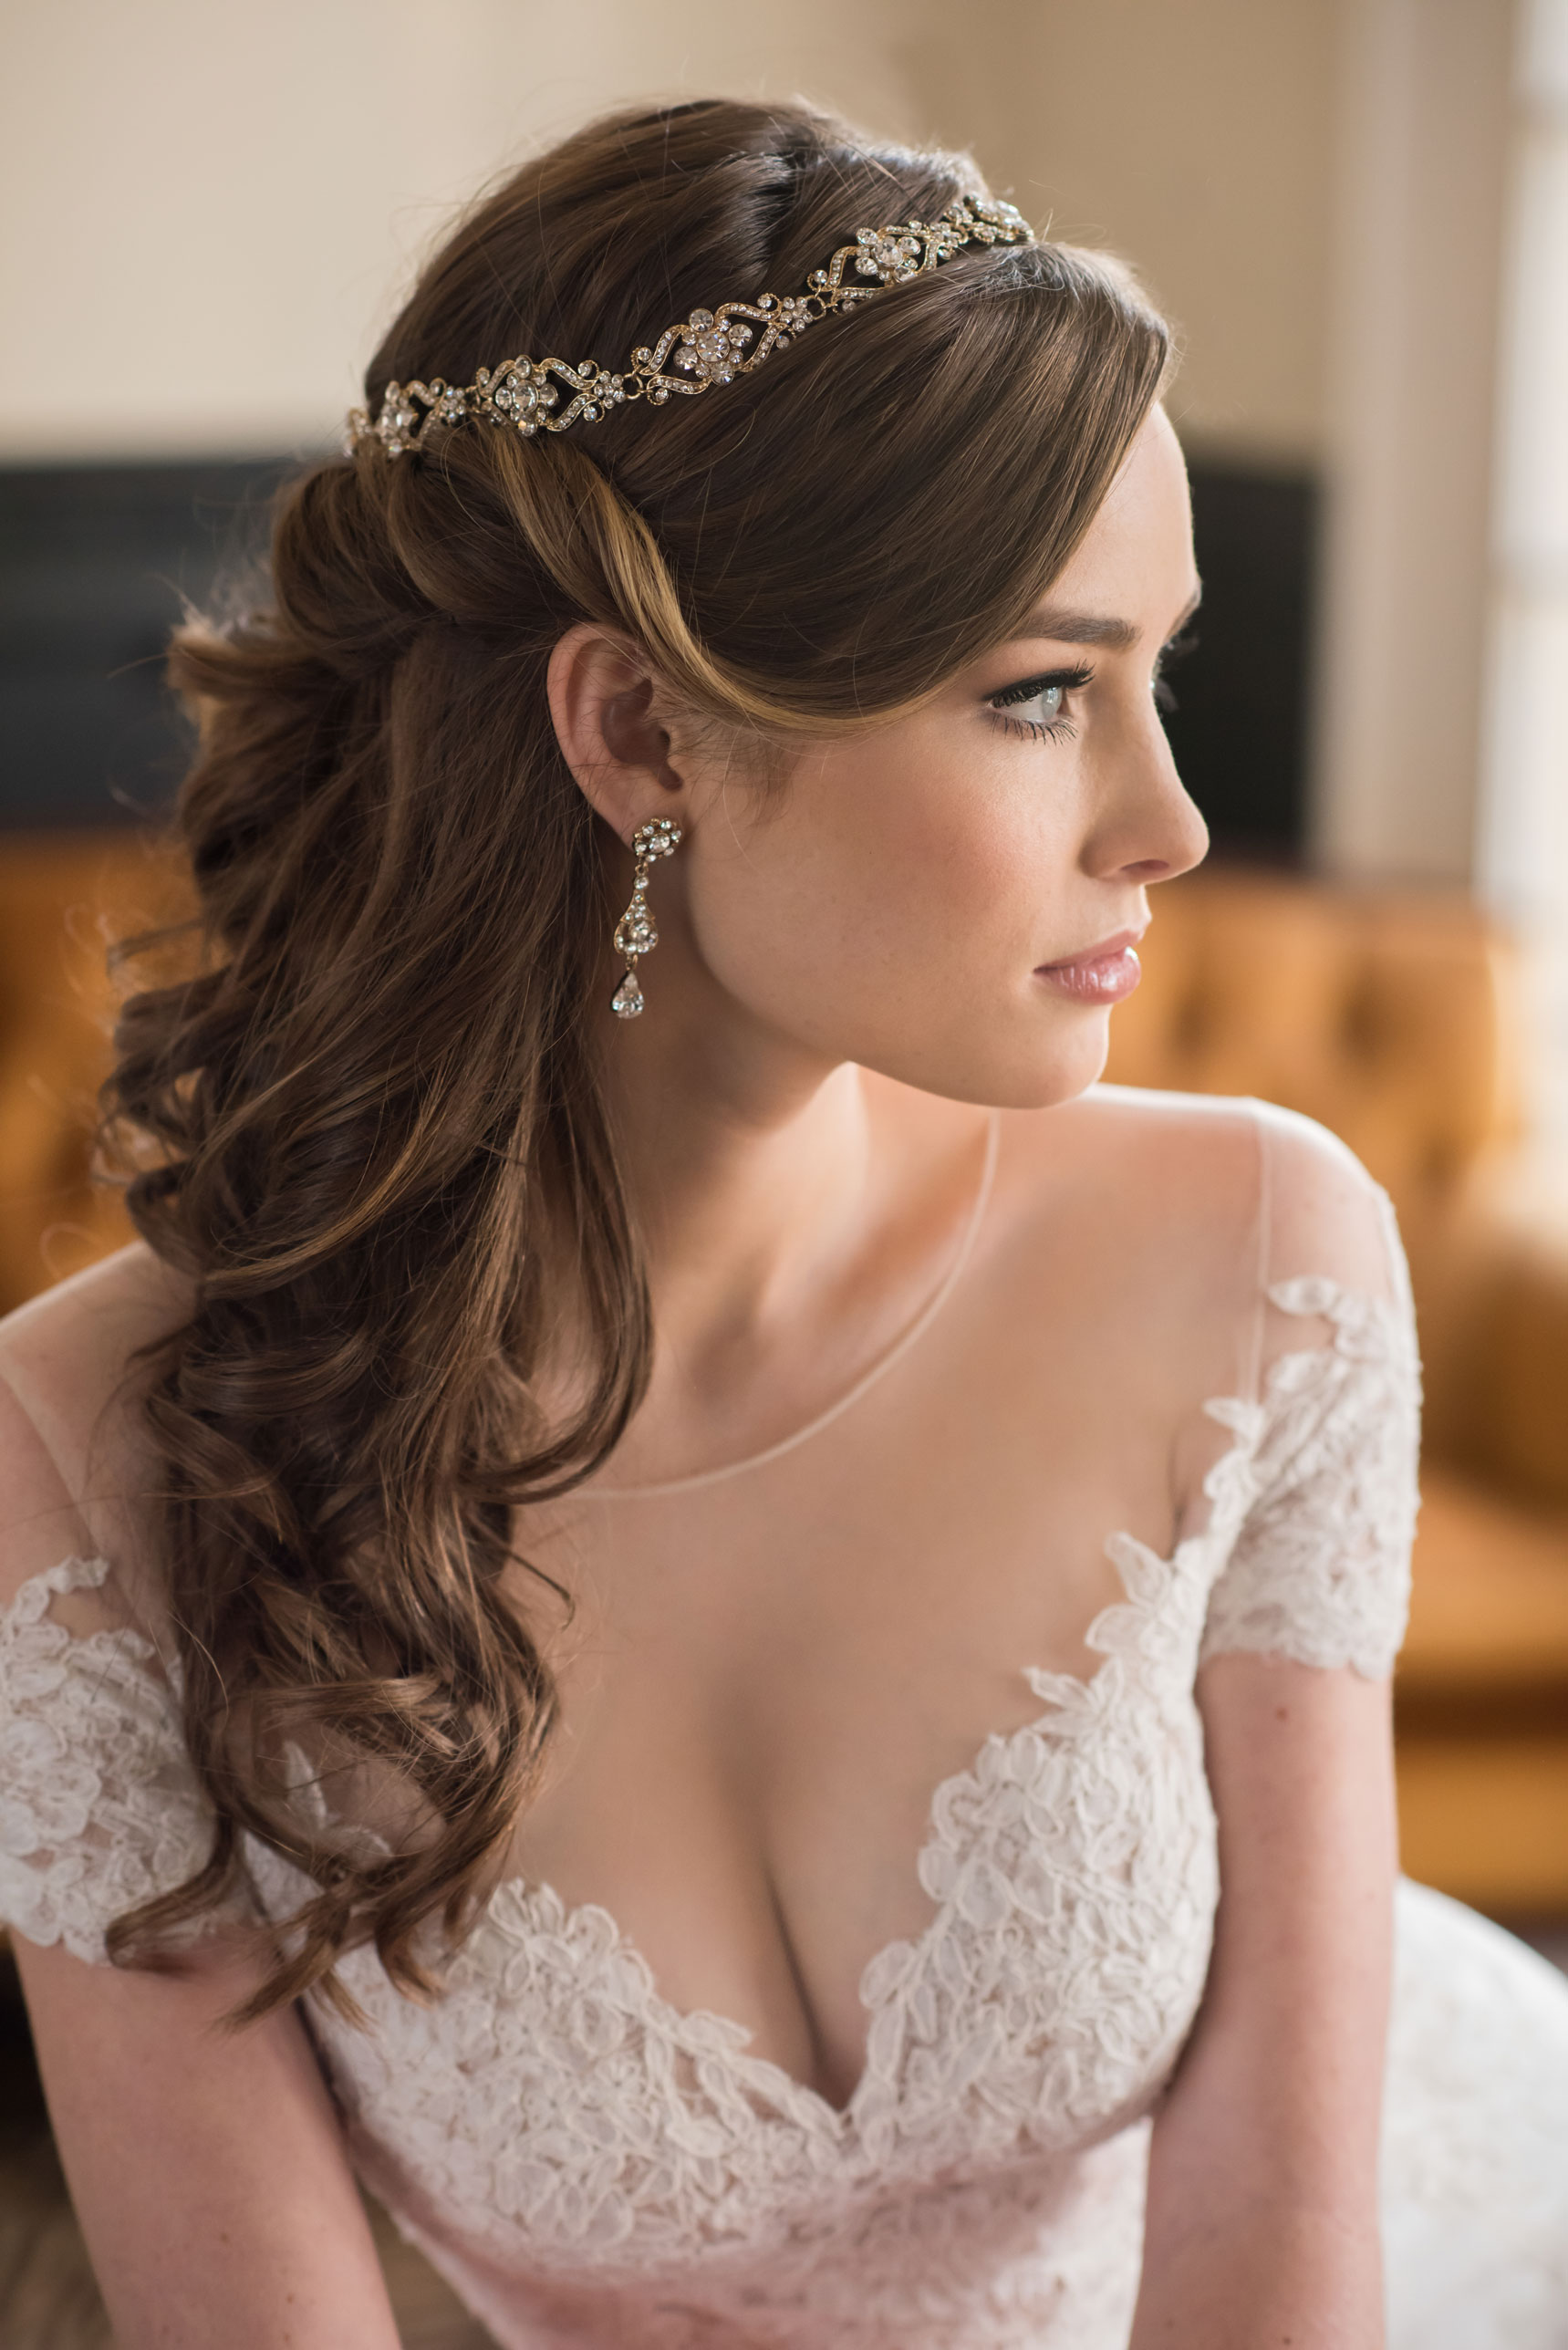 Bel-Aire-Bridal-Watters-KLK-Photography022.jpg